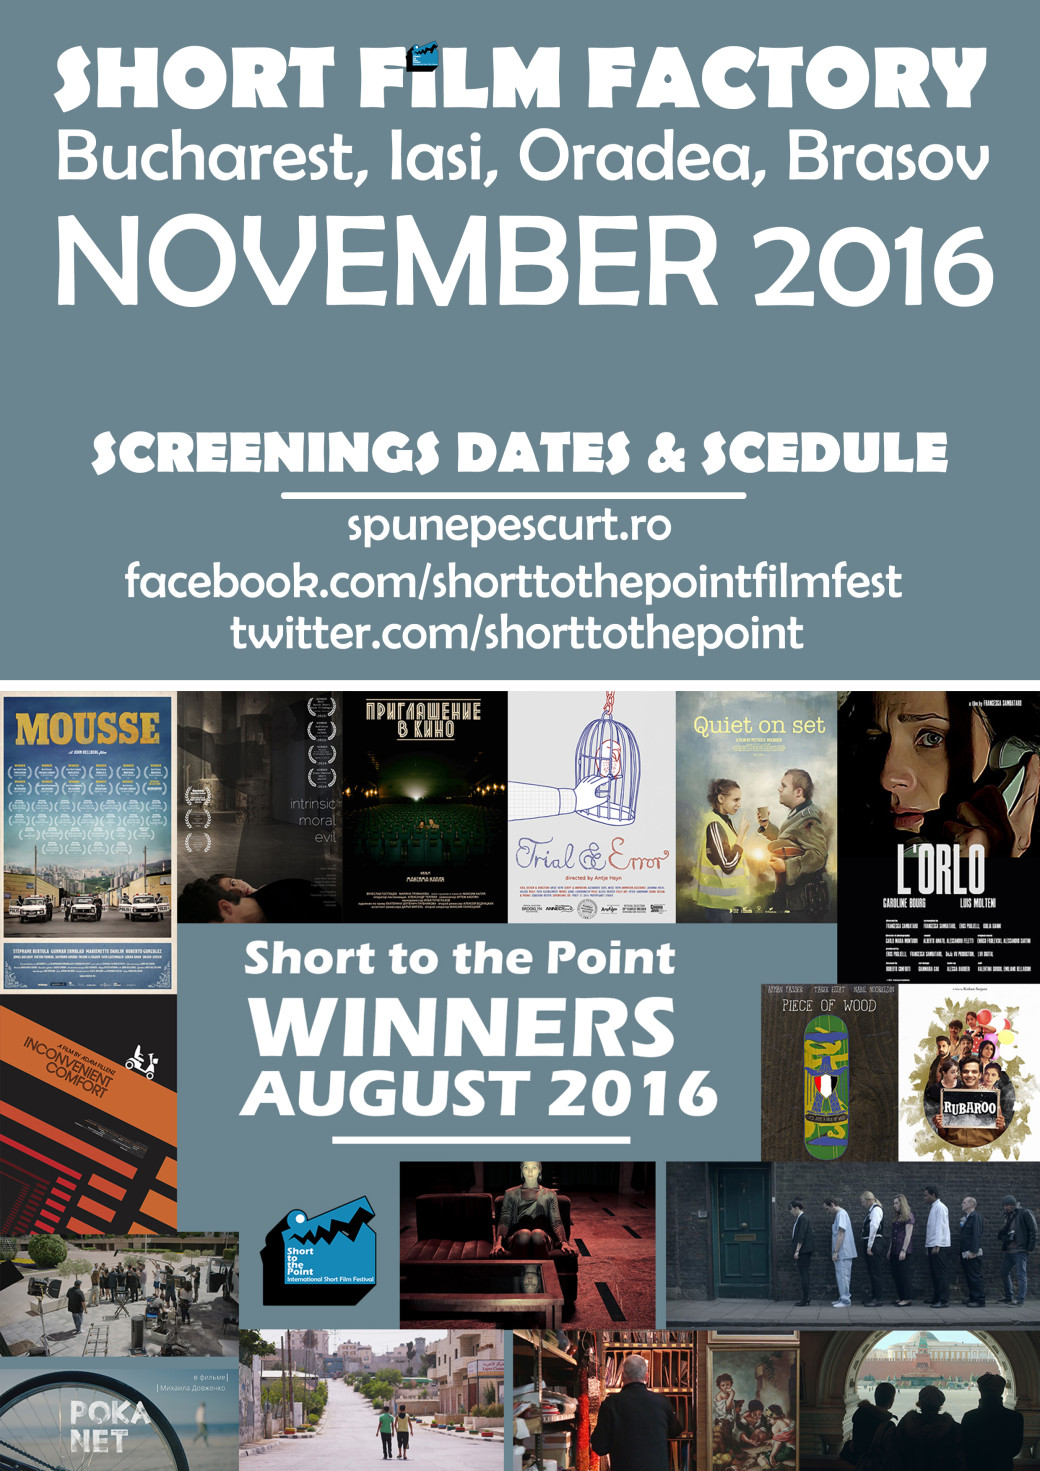 november-screening-poster-official-schedule